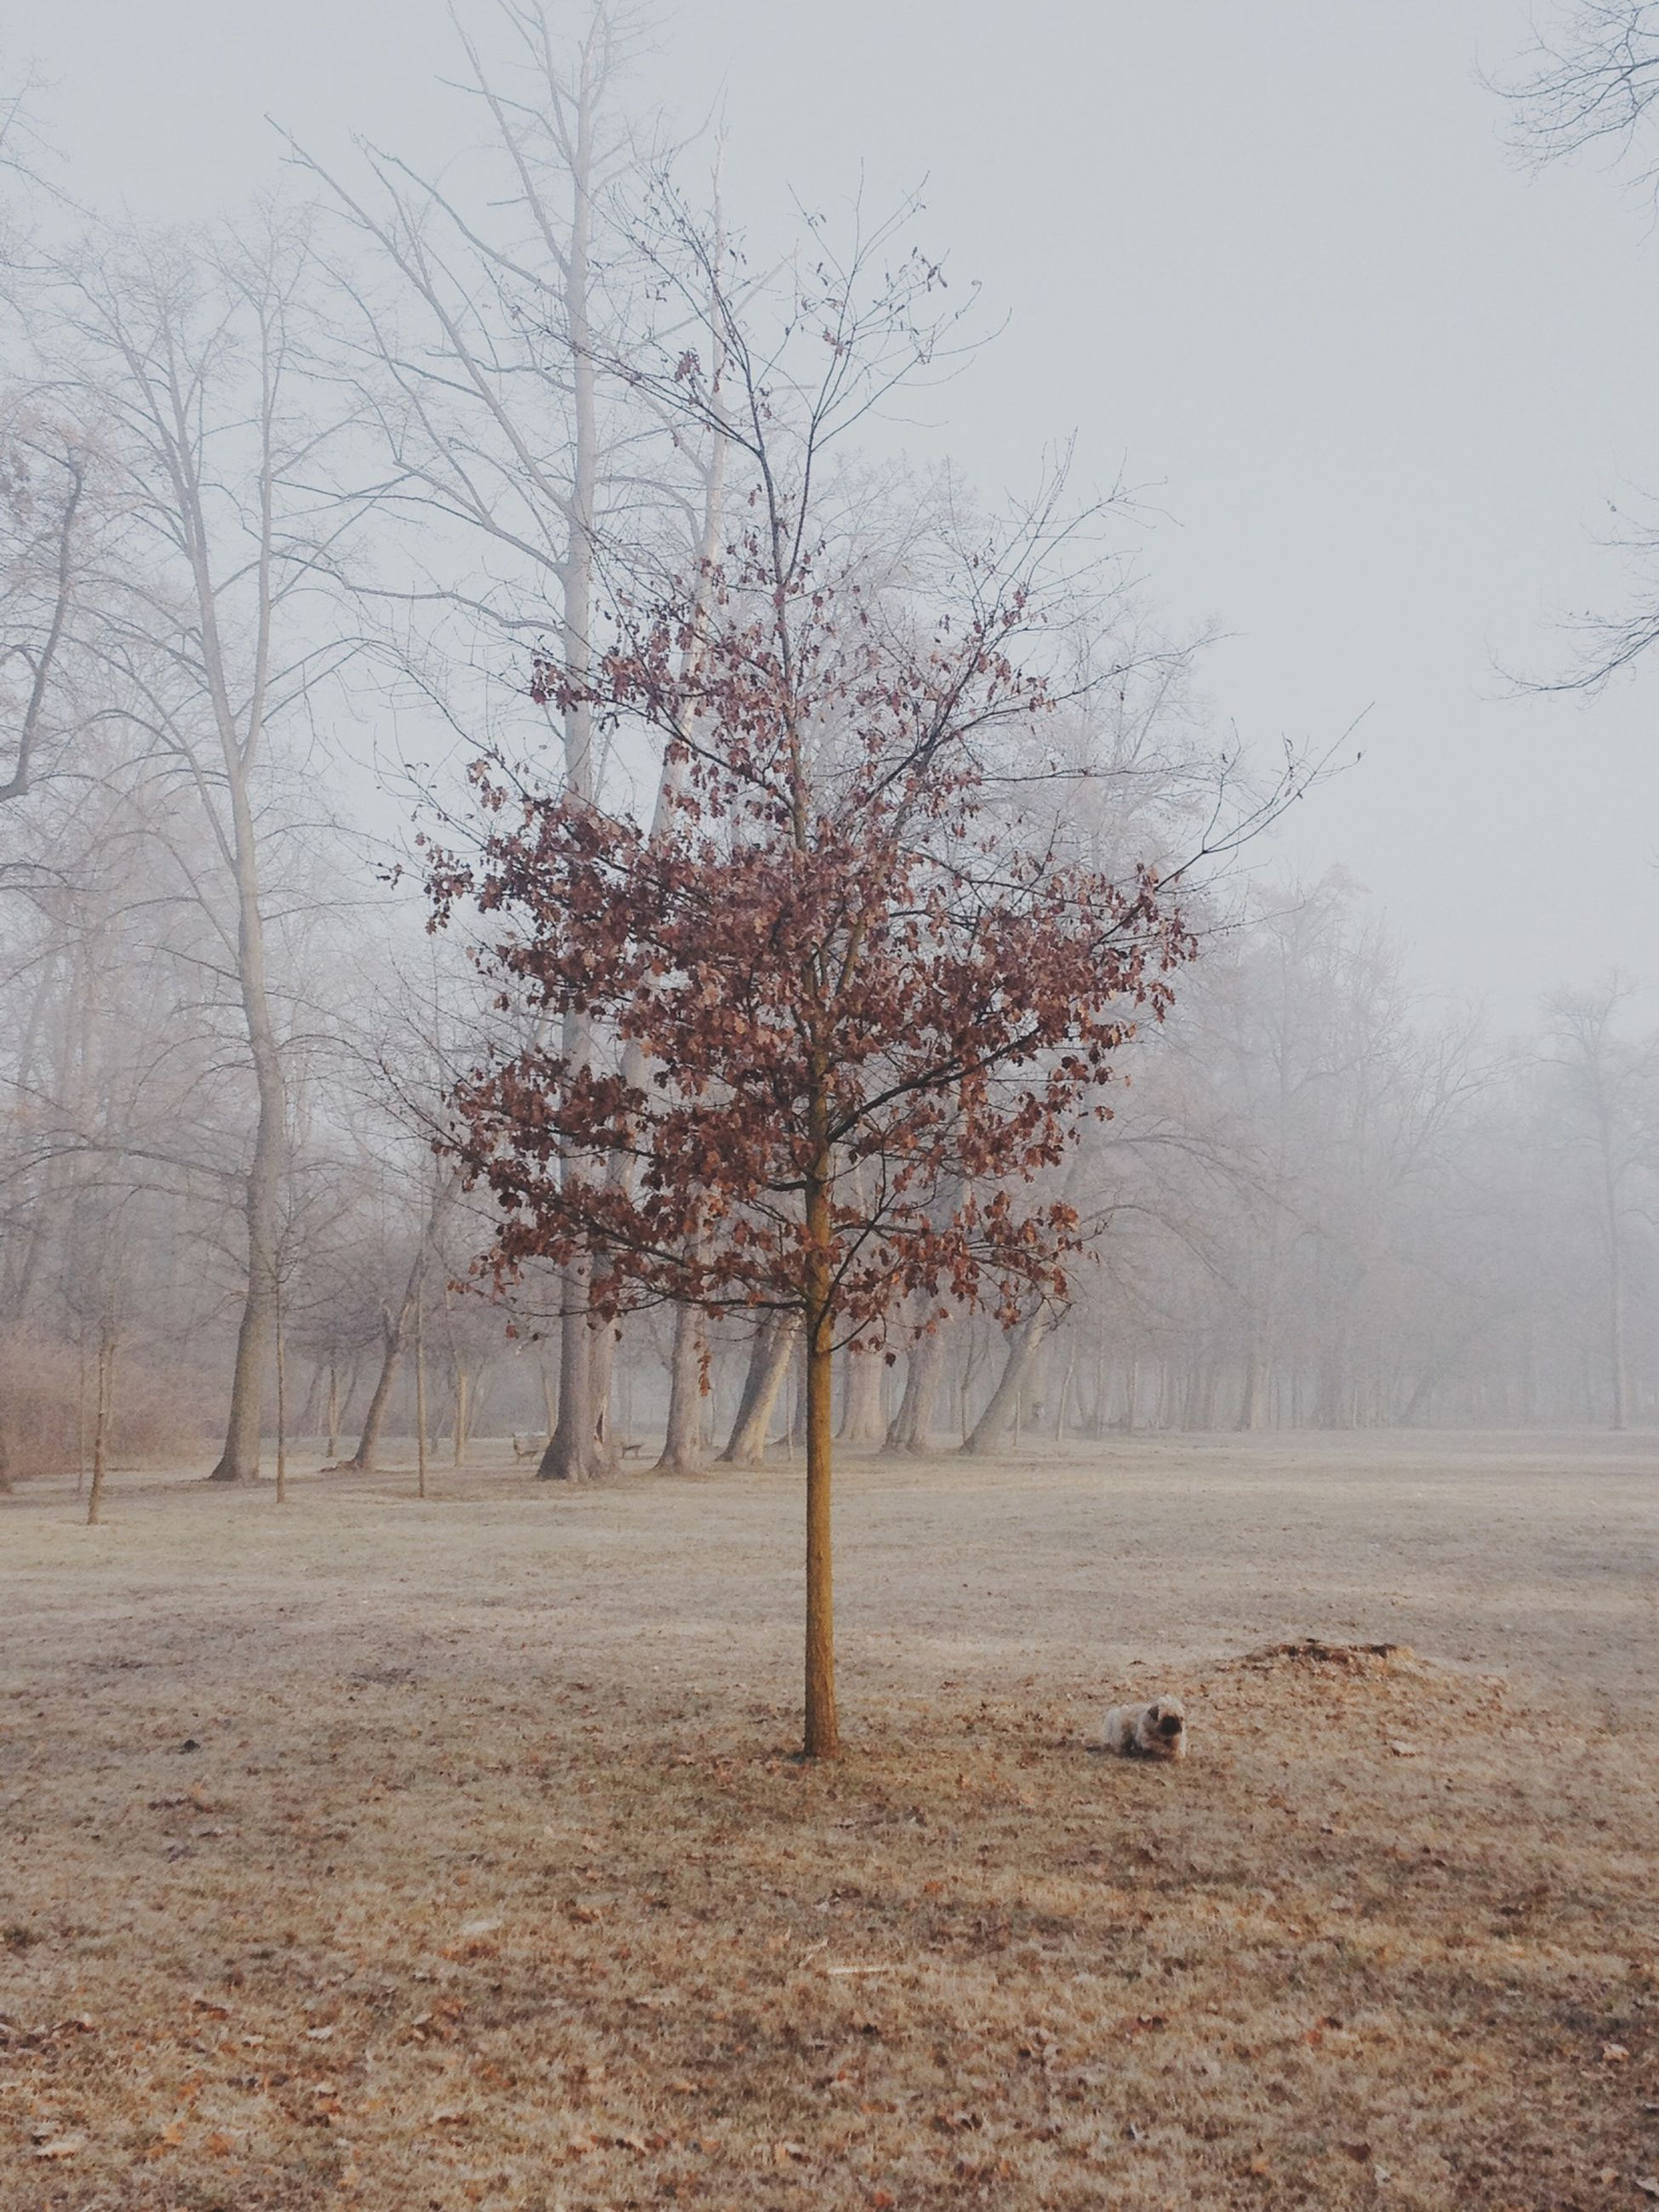 tree, fog, bare tree, tranquility, foggy, tranquil scene, landscape, weather, nature, field, season, scenics, beauty in nature, branch, autumn, animal themes, non-urban scene, tree trunk, day